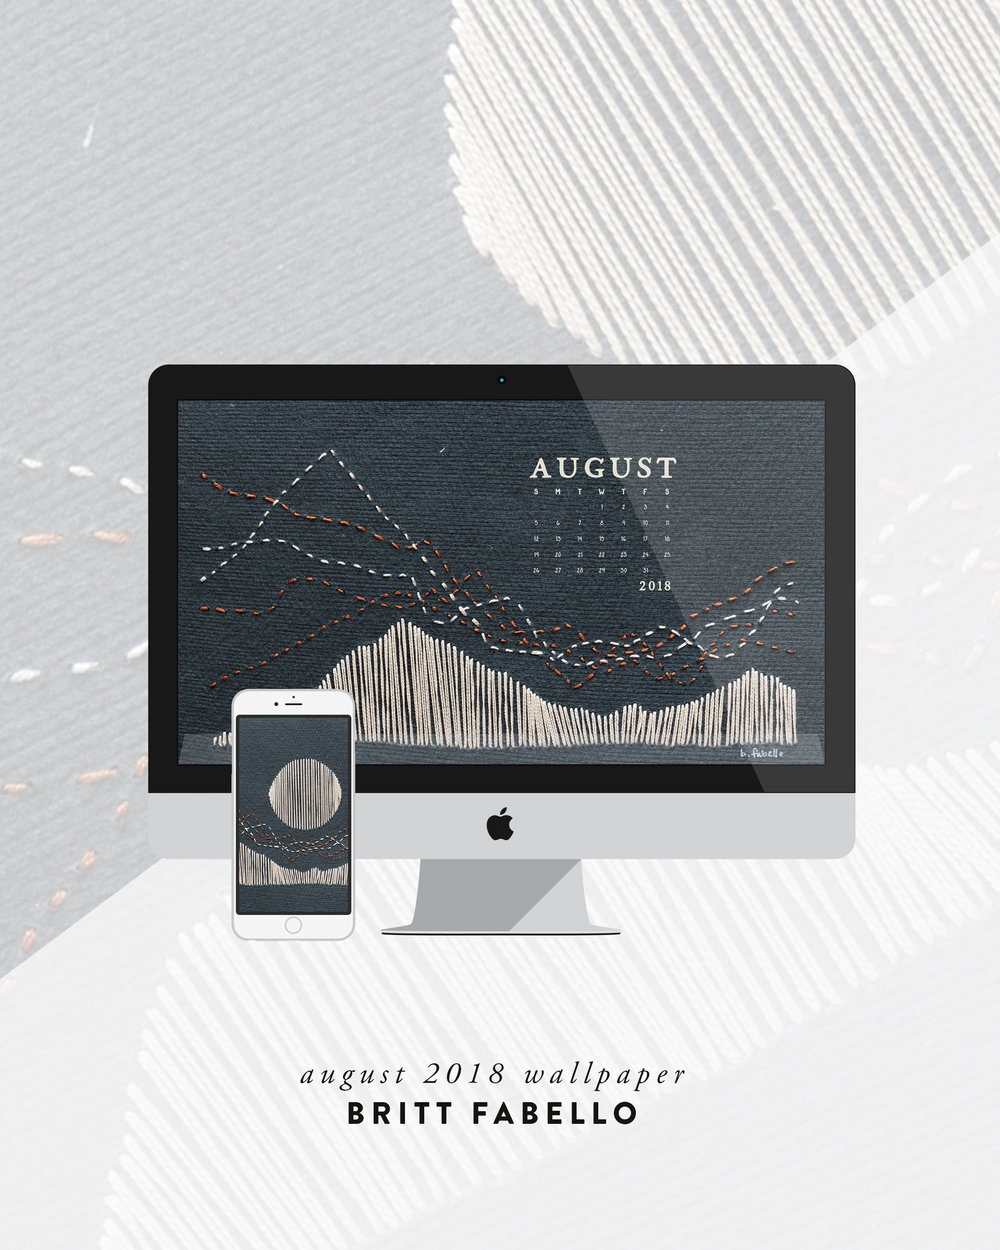 Wallpaper: August 2018 Calendar & Art | Phone & Desktop | Britt Fabello